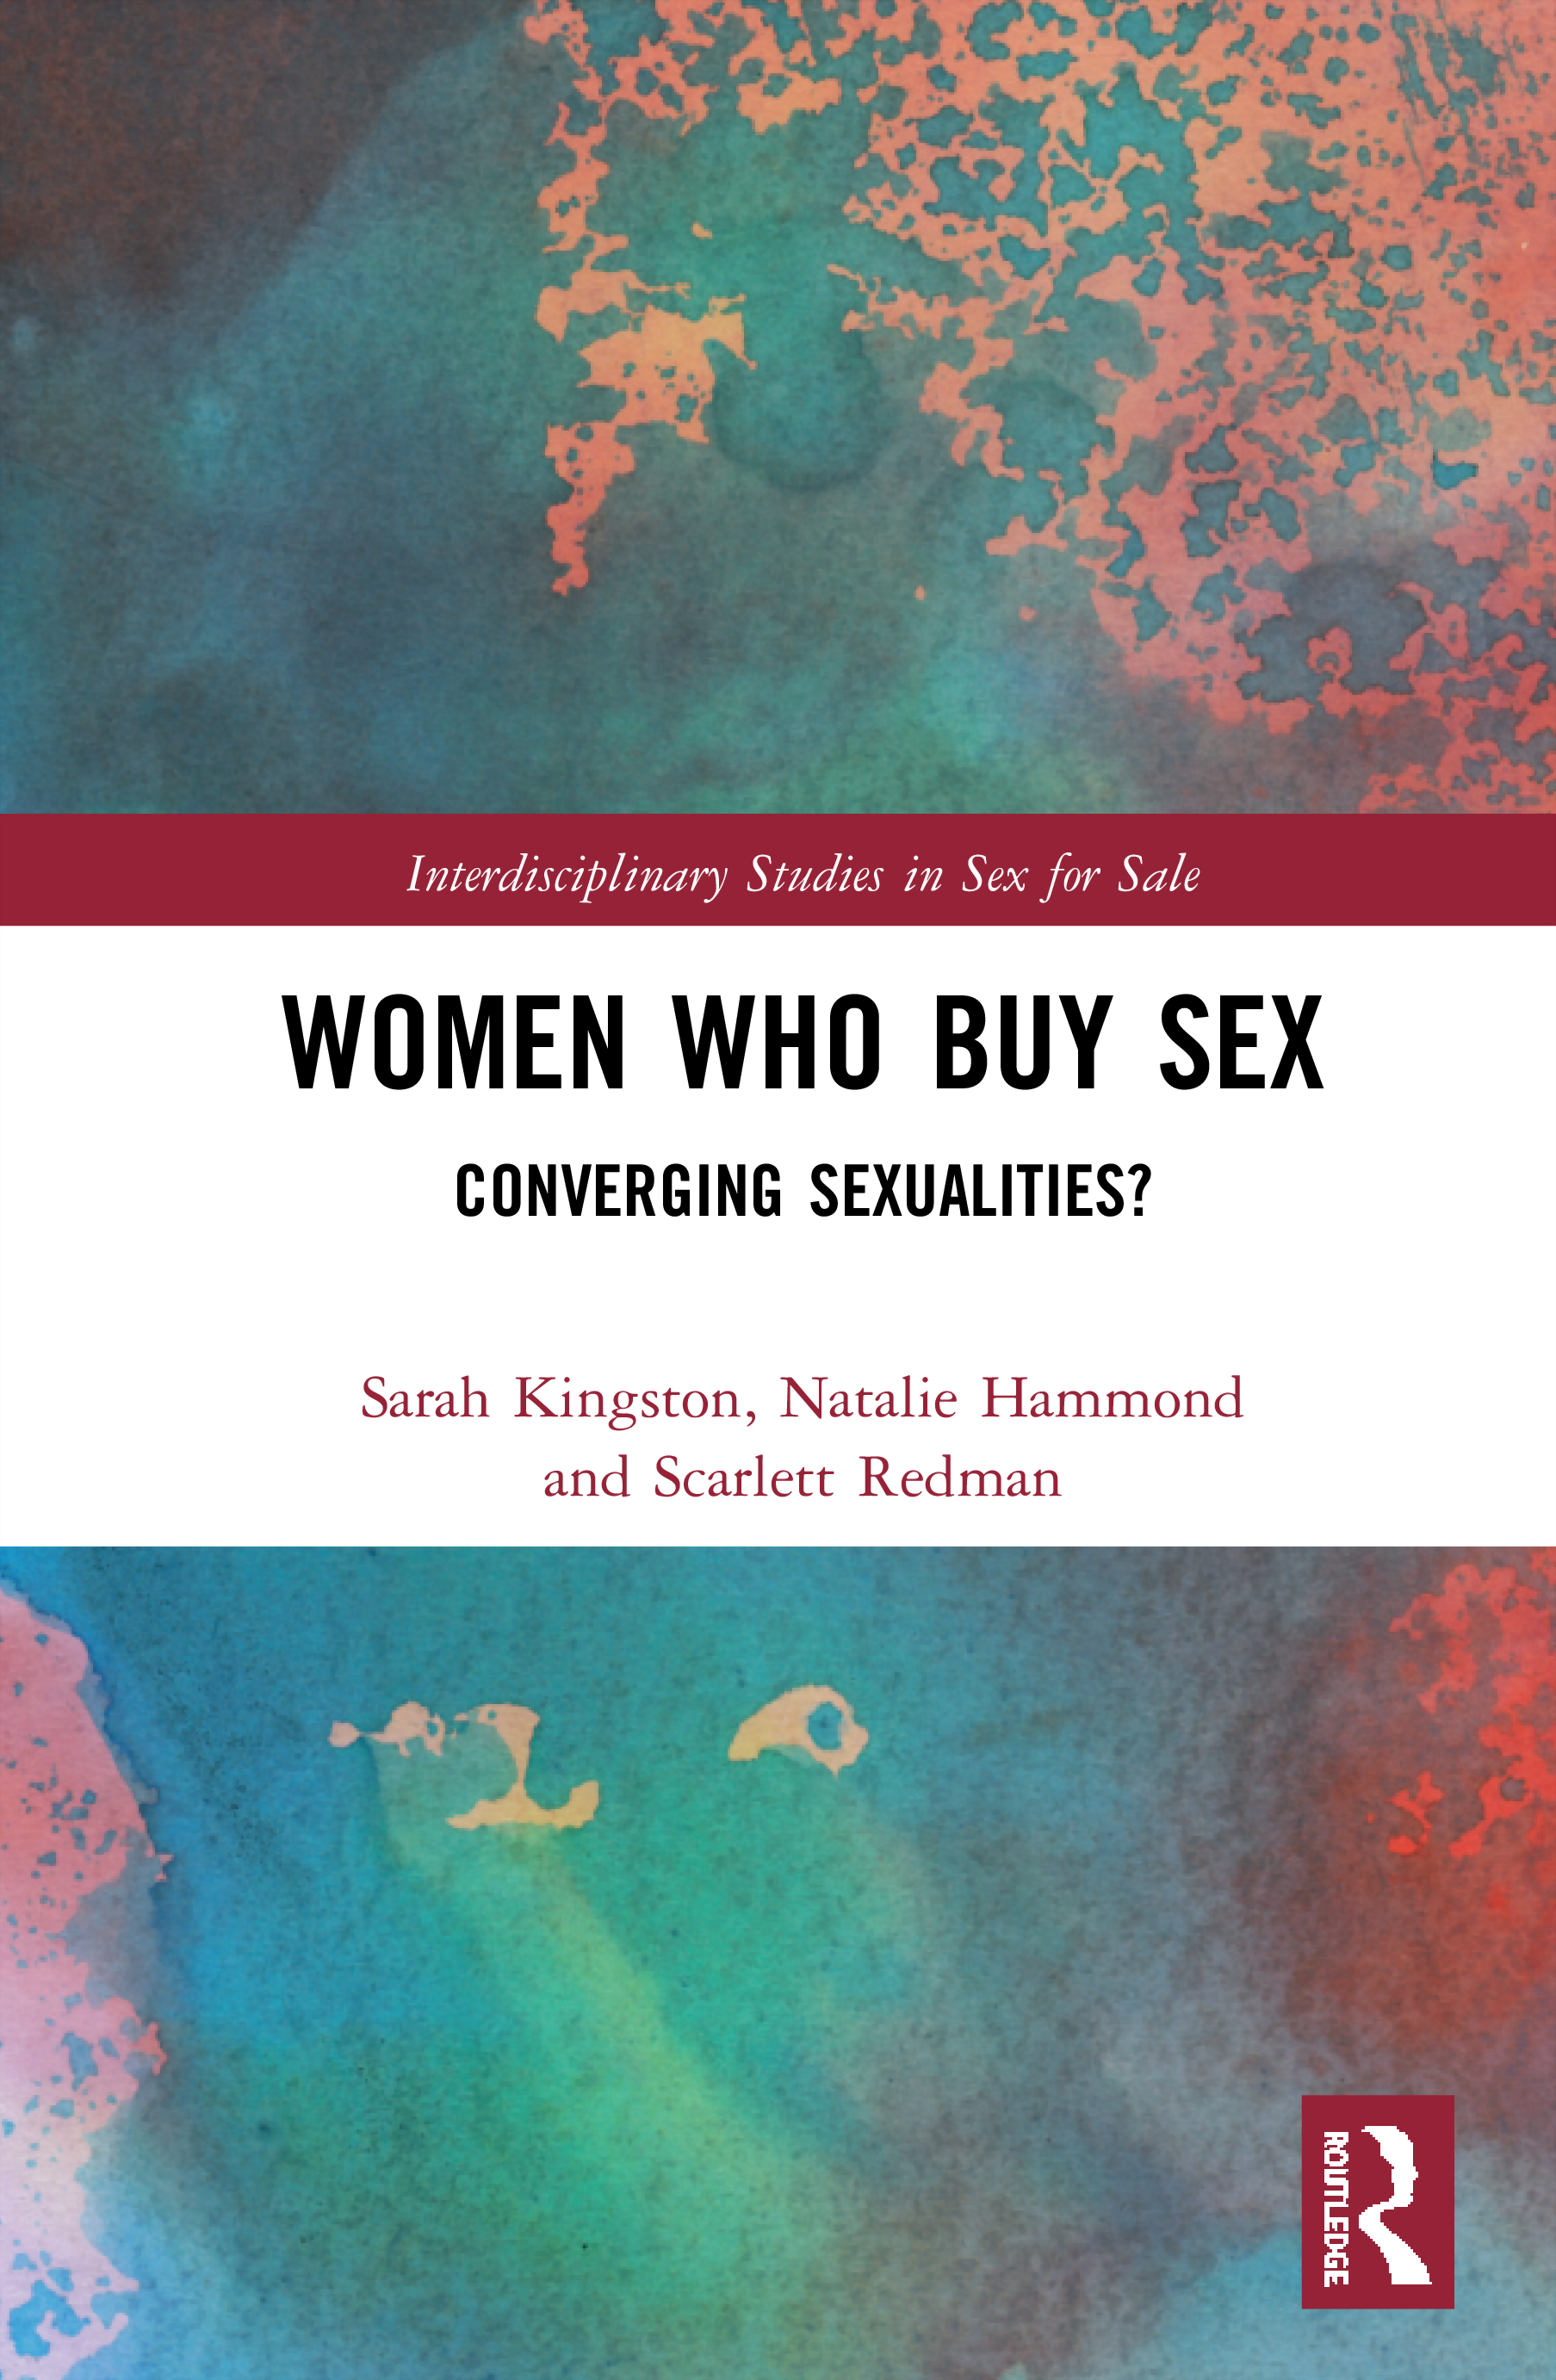 Women Who Buy Sex: Converging Sexualities? book cover